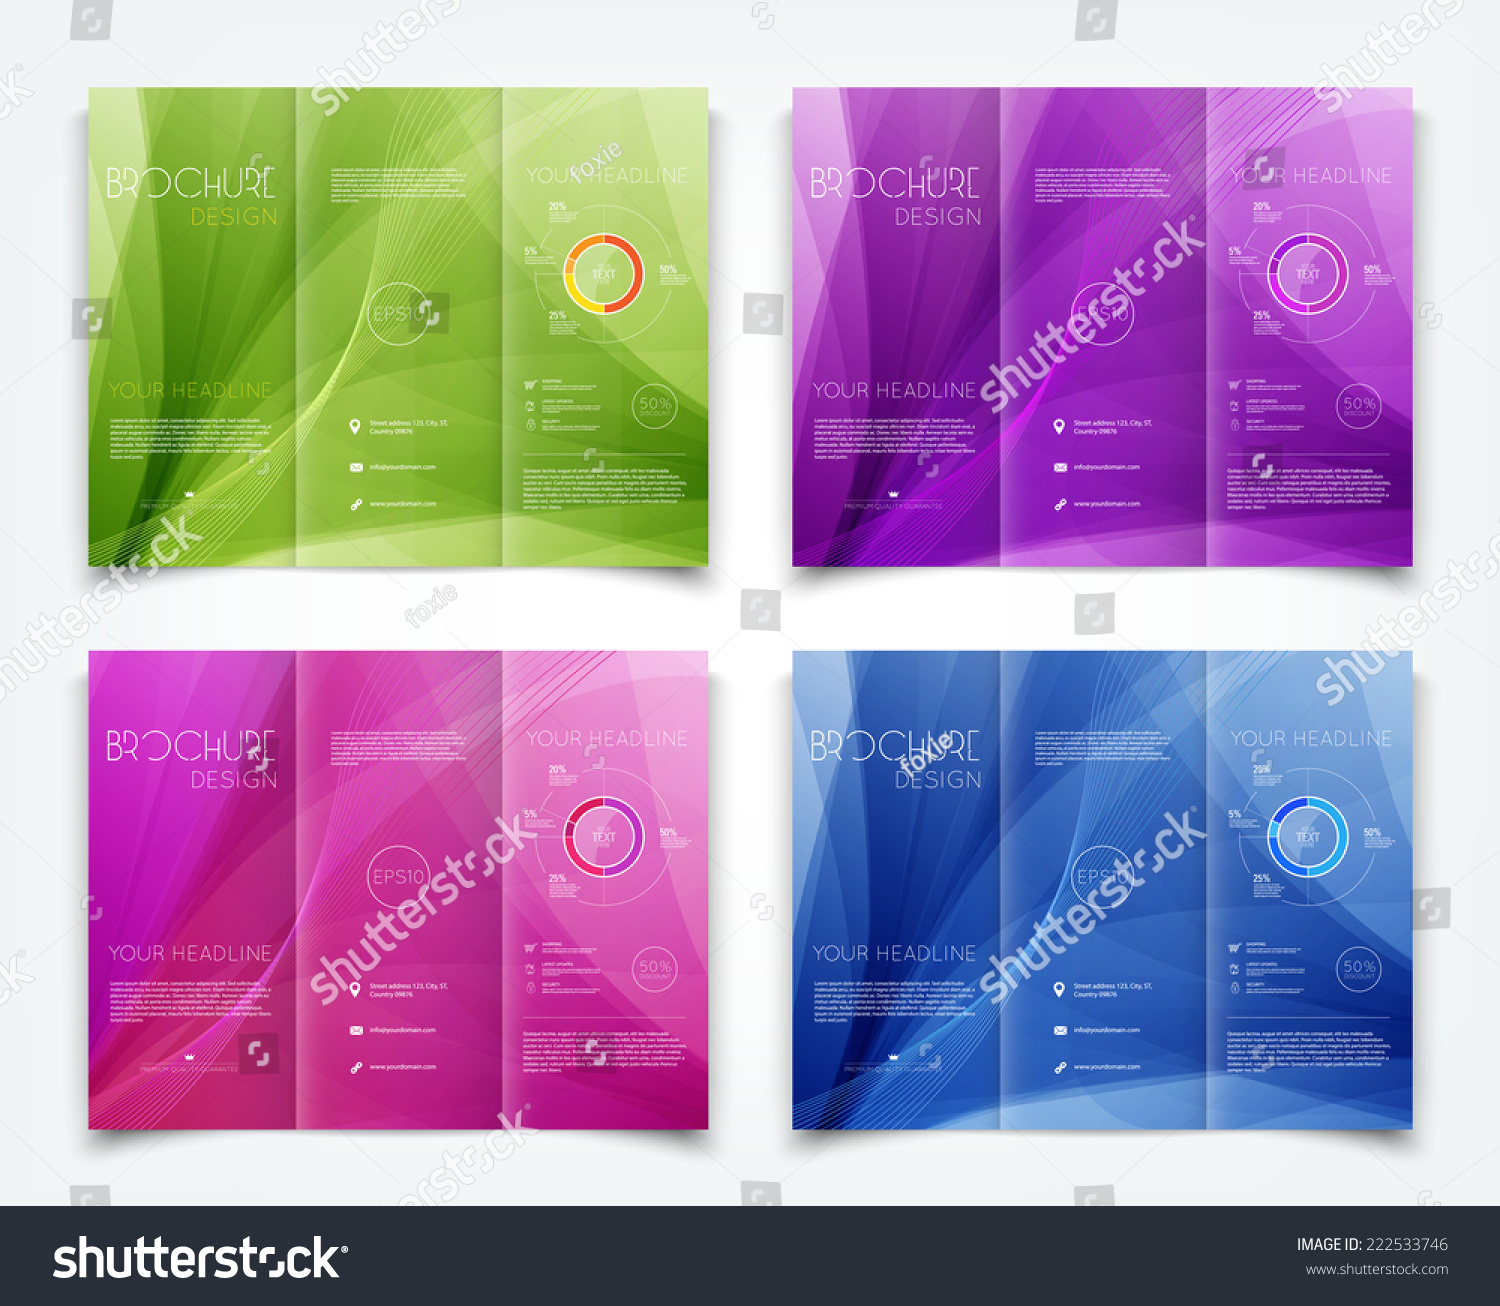 Vector collection trifold brochure design templates stock for Colorful brochure templates